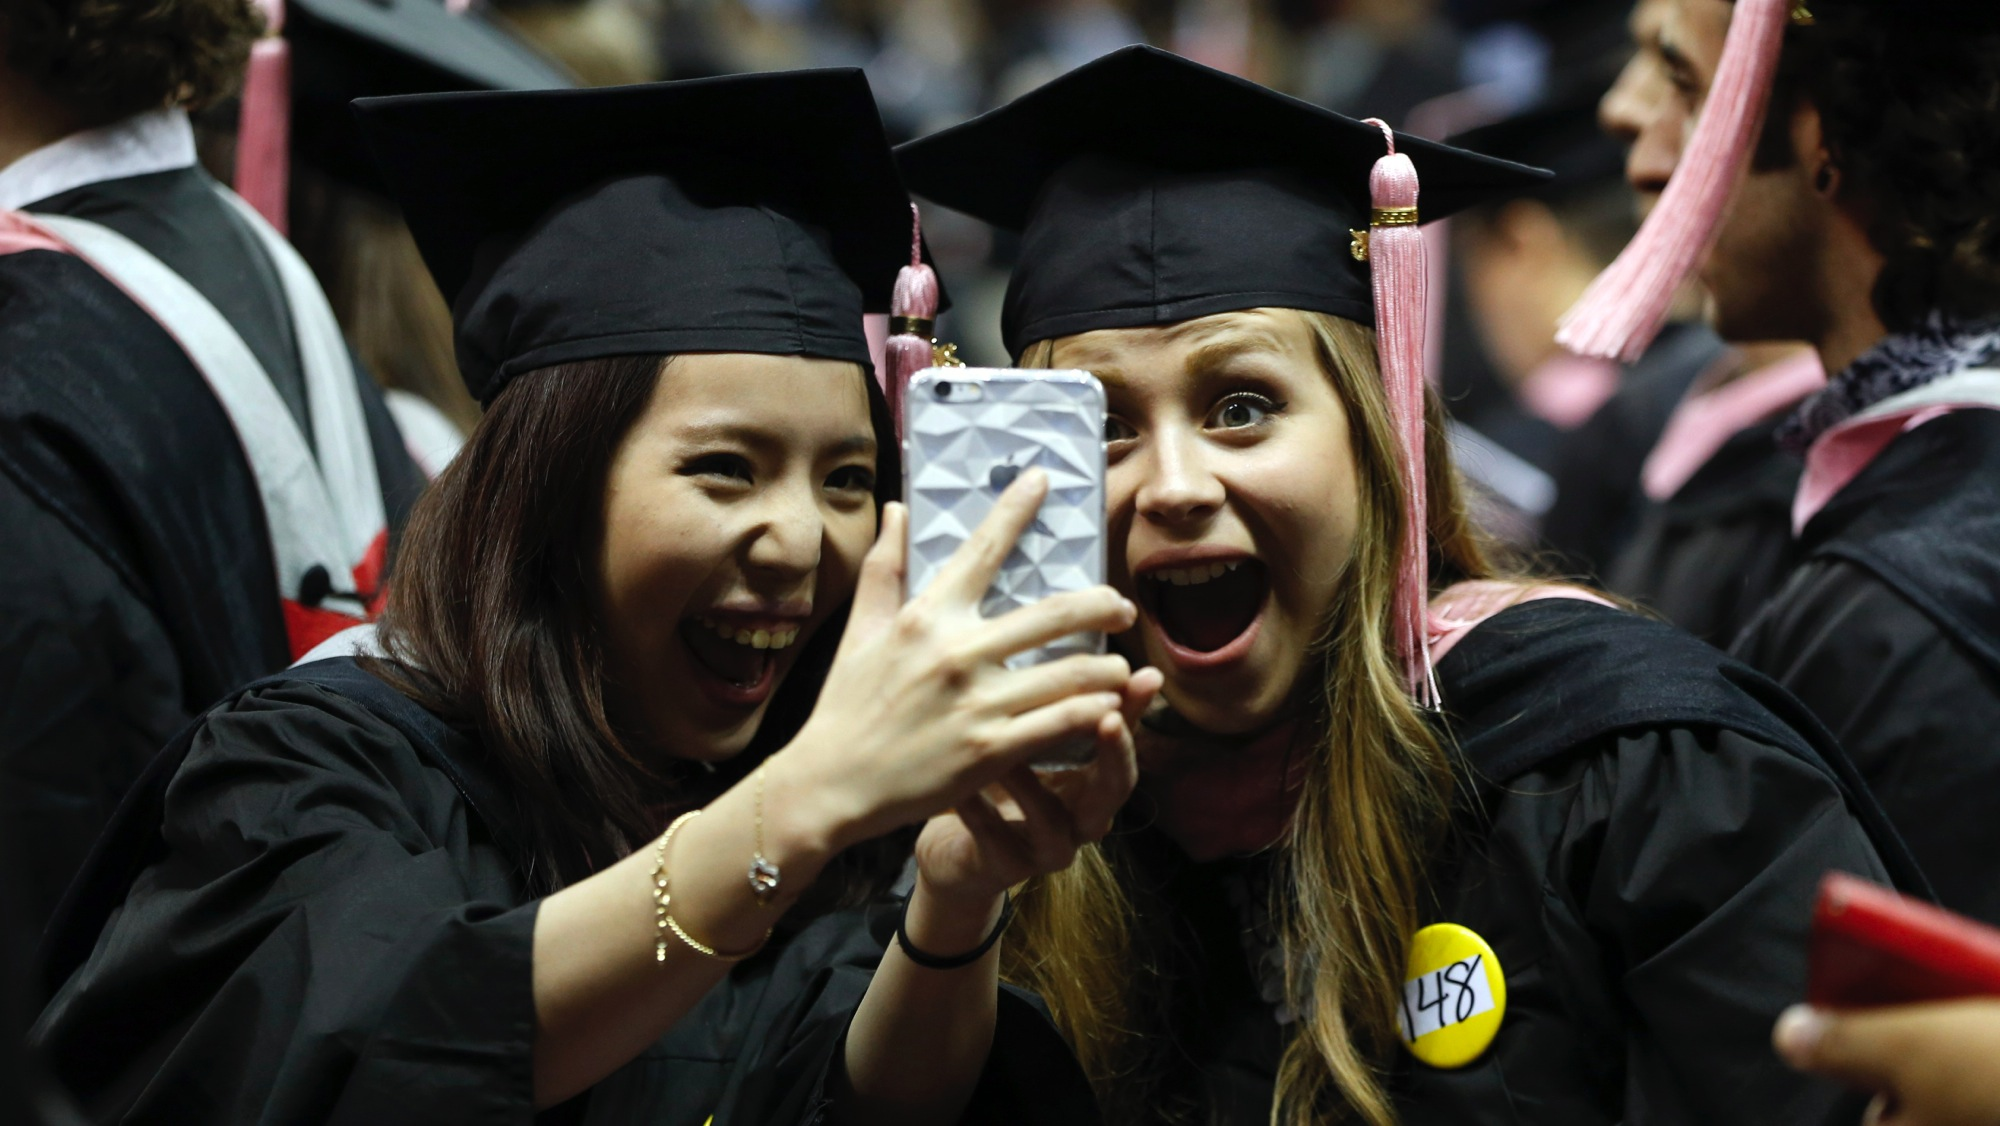 Berklee College of Music graduates take a selfie during commencement ceremonies, Saturday, May 9, 2015, in Boston. (AP Photo/Michael Dwyer)